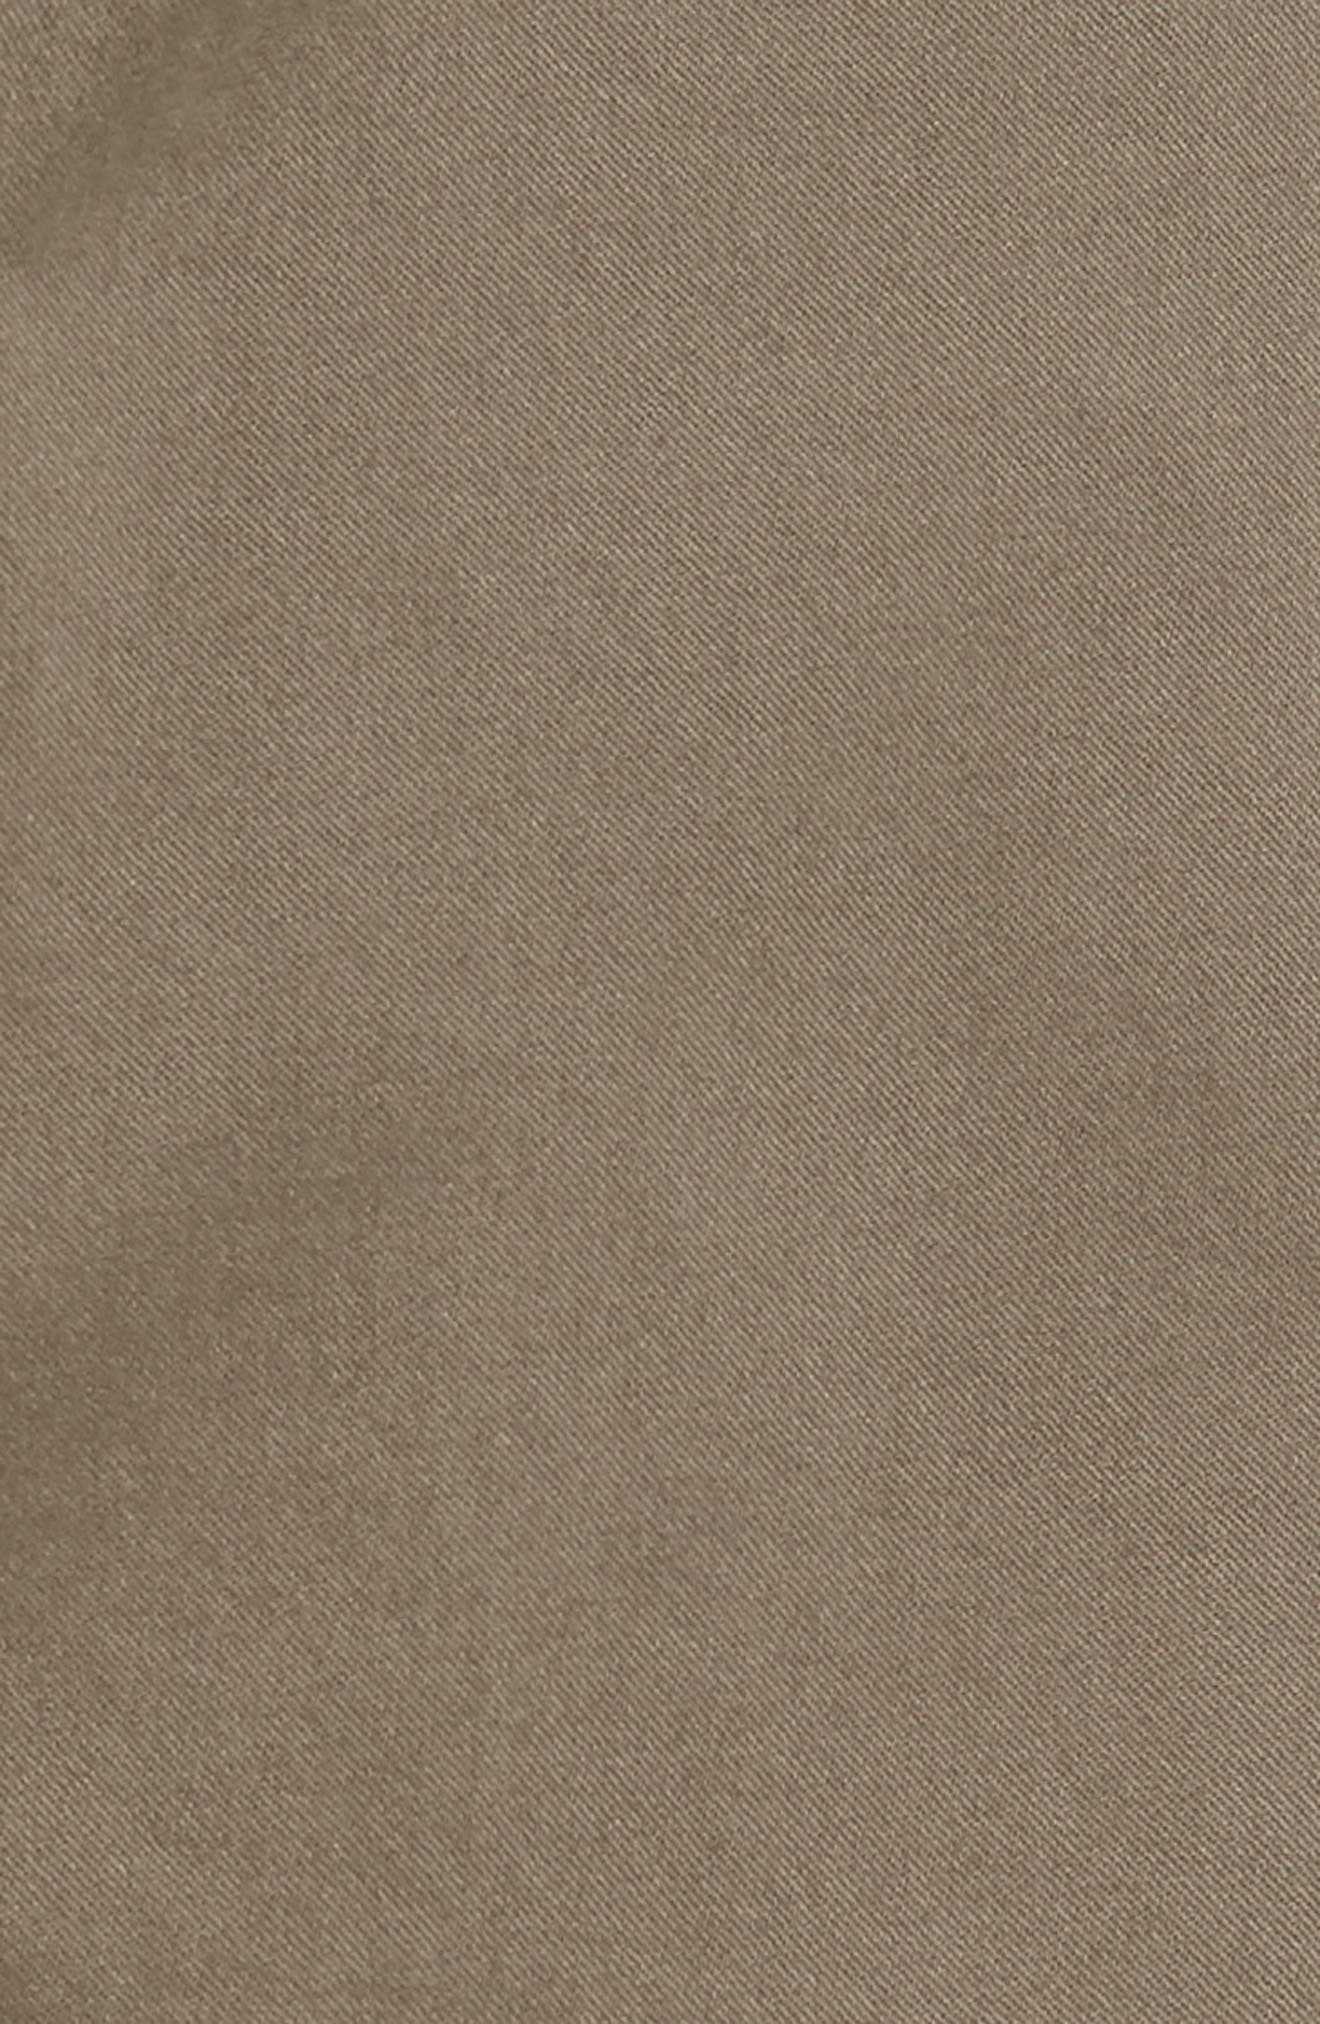 Matt Relaxed Fit Twill Pants,                             Alternate thumbnail 5, color,                             Dusty Olive